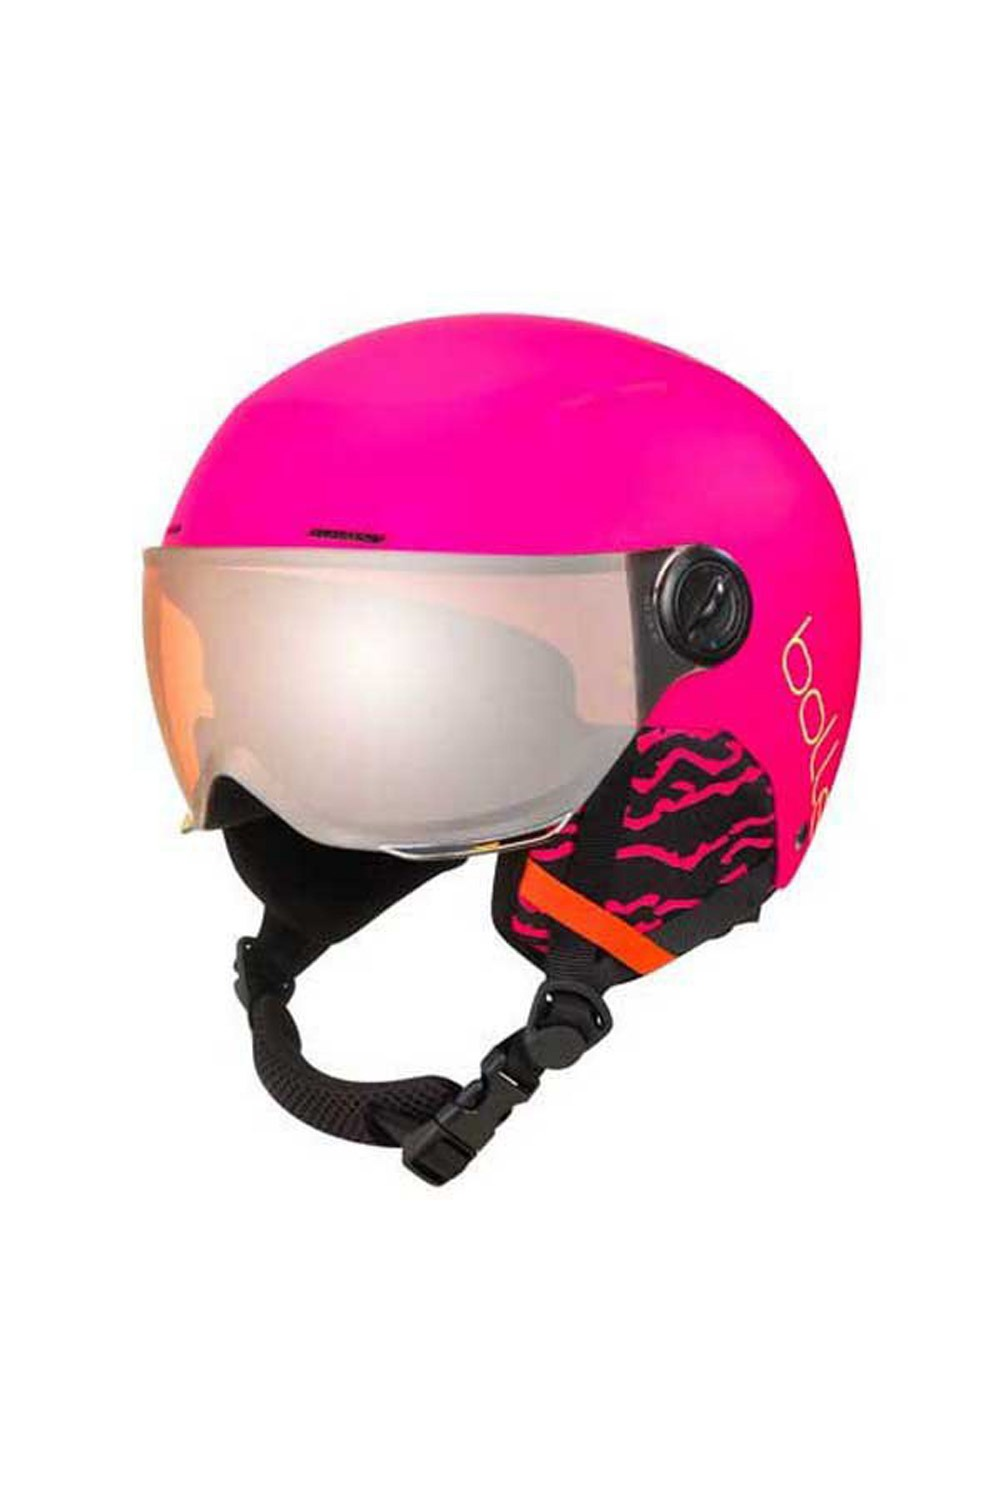 볼레 주니어 헬멧 퀴즈 바이저_1920 BOLLE_QUIZ 어린이 VISOR MATTE HOT PINK WITH ORANGE GUN VISOR CAT 2_F0B905PK_DF0B905PK